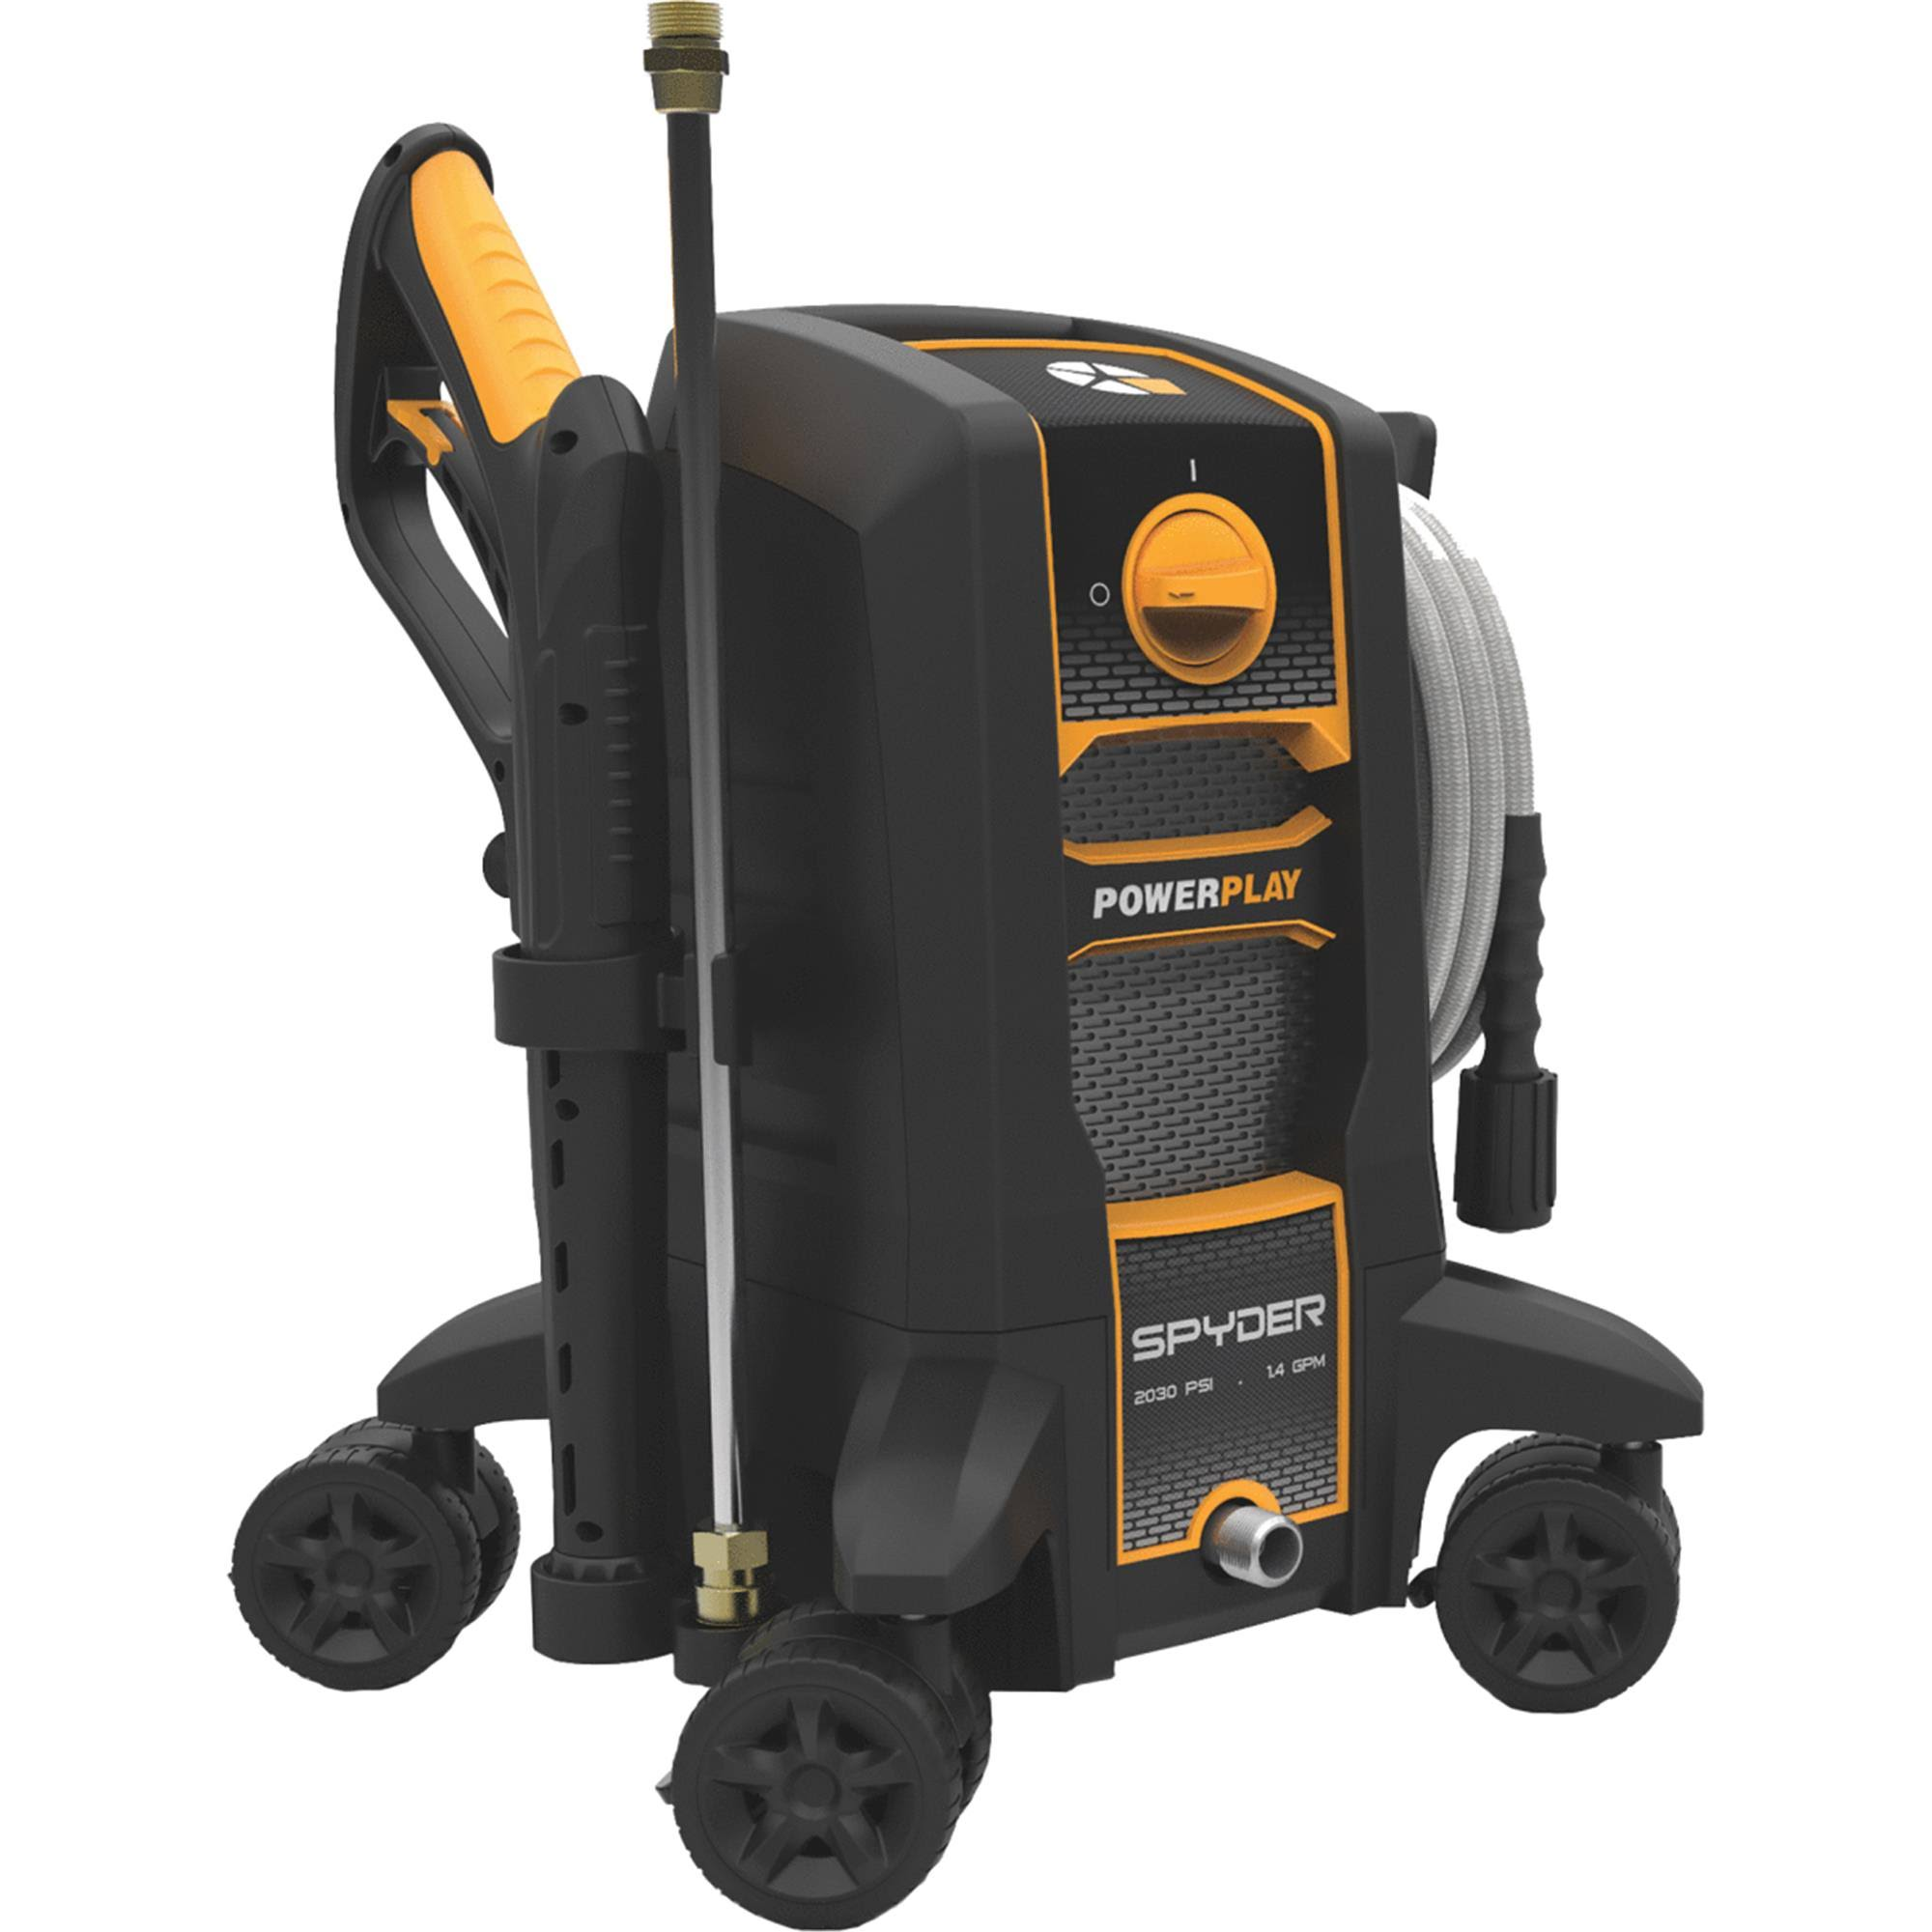 Powerplay Spyder 2030 PSI Electric Pressure Washer